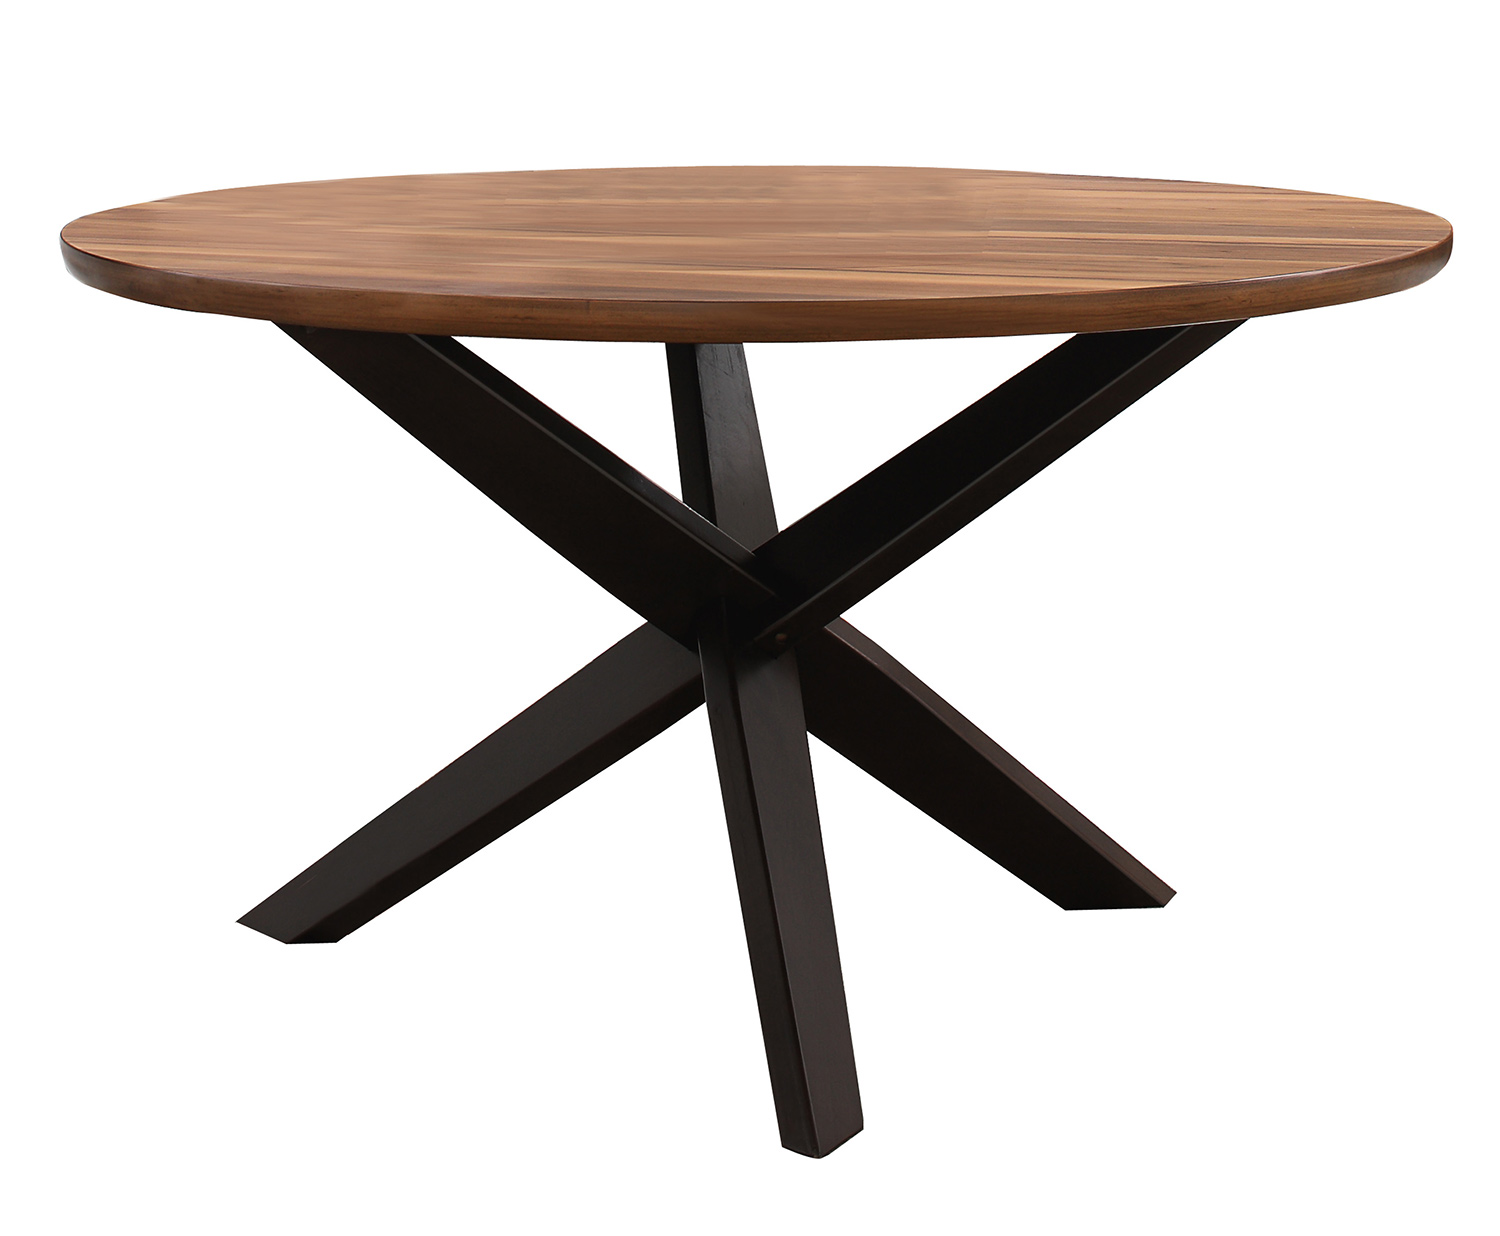 Homelegance Nelina Round Dining Table - Espresso-Natural